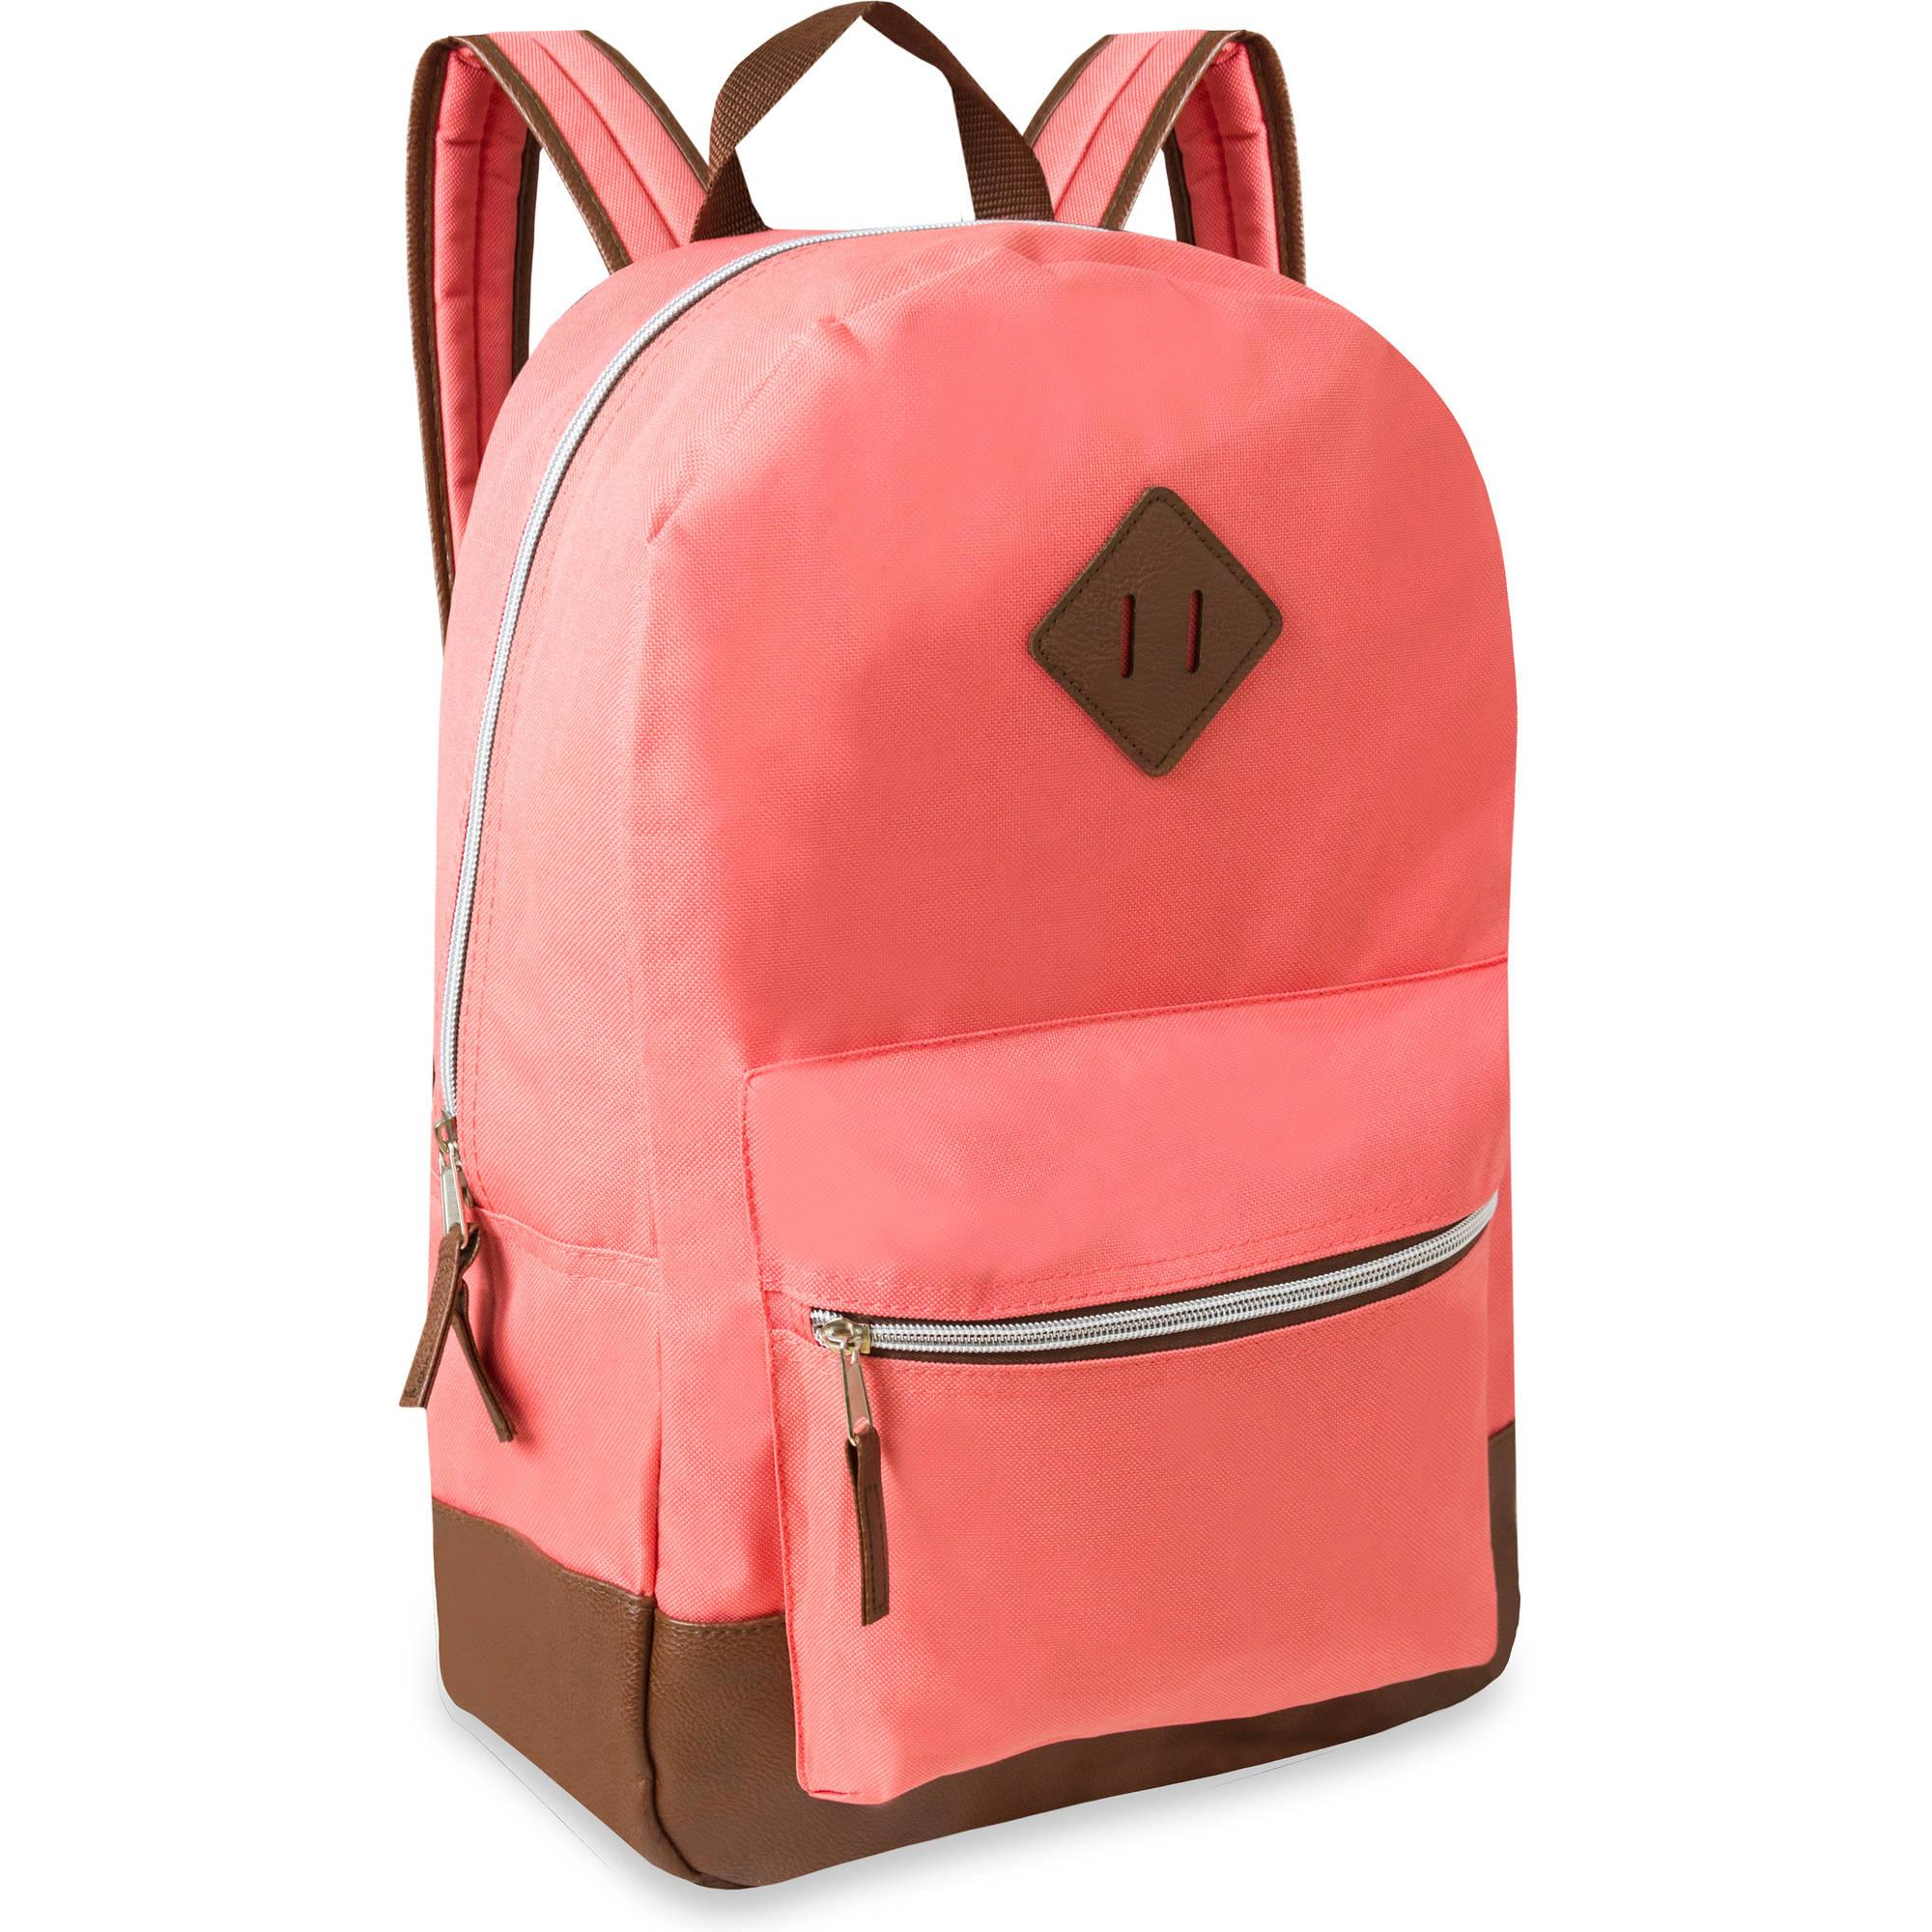 17 5 Classic Backpack With Reinforced Vinyl Bottom And